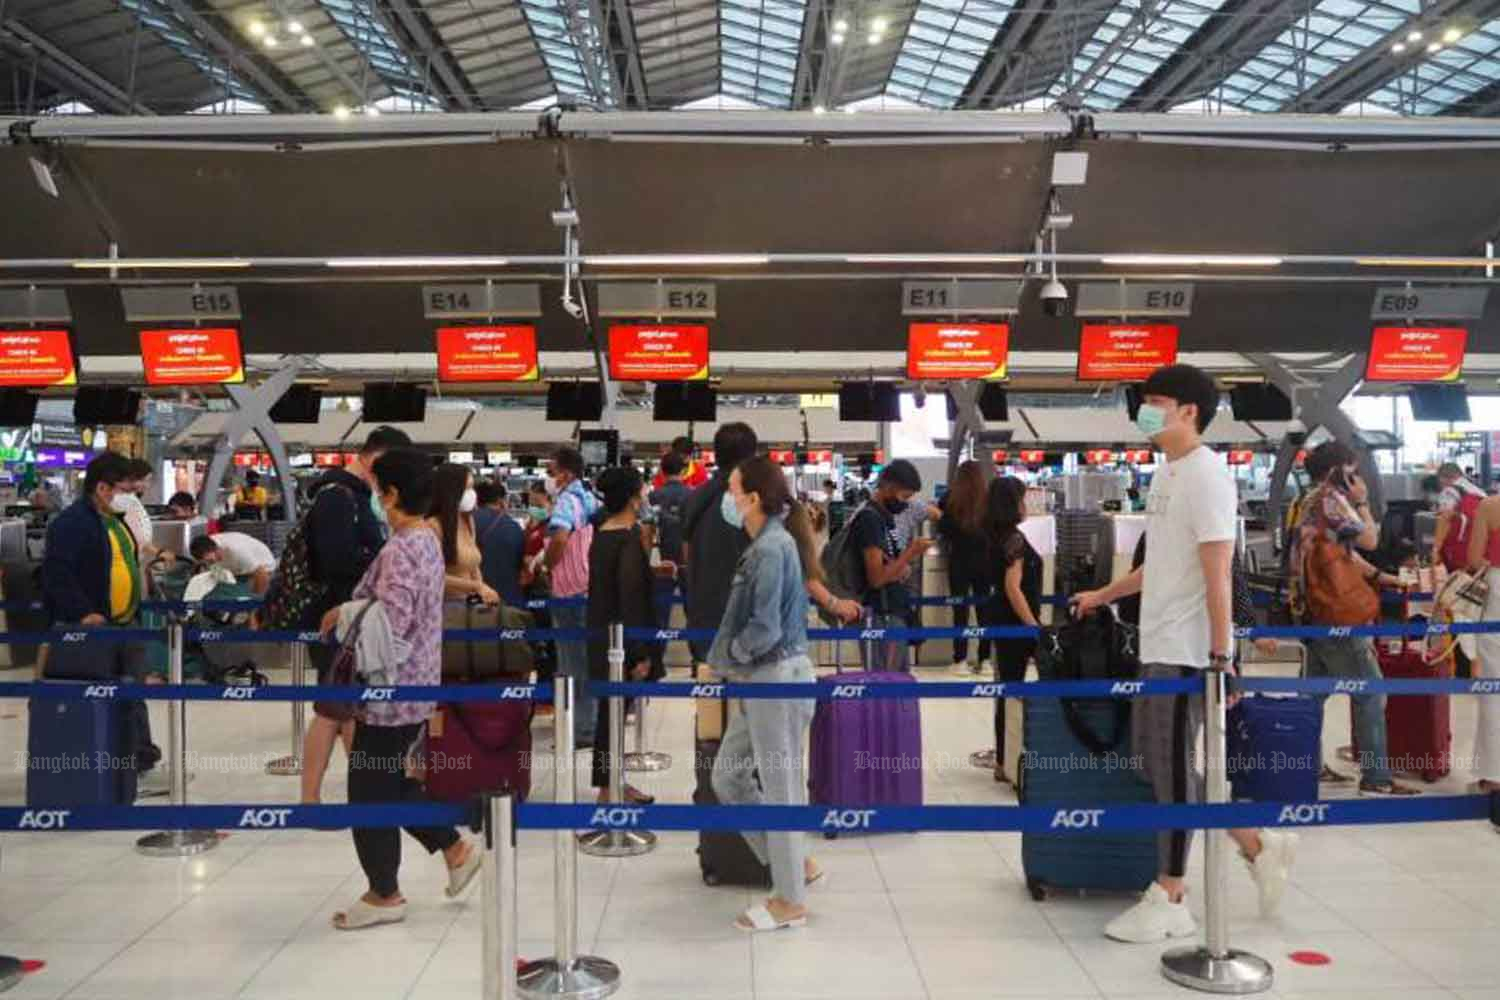 Local travellers queue, with careful spacing, to check-in for domestic flights at Suvarnabhumi airport last month. (Photo: Dusida Worrachaddejchai)